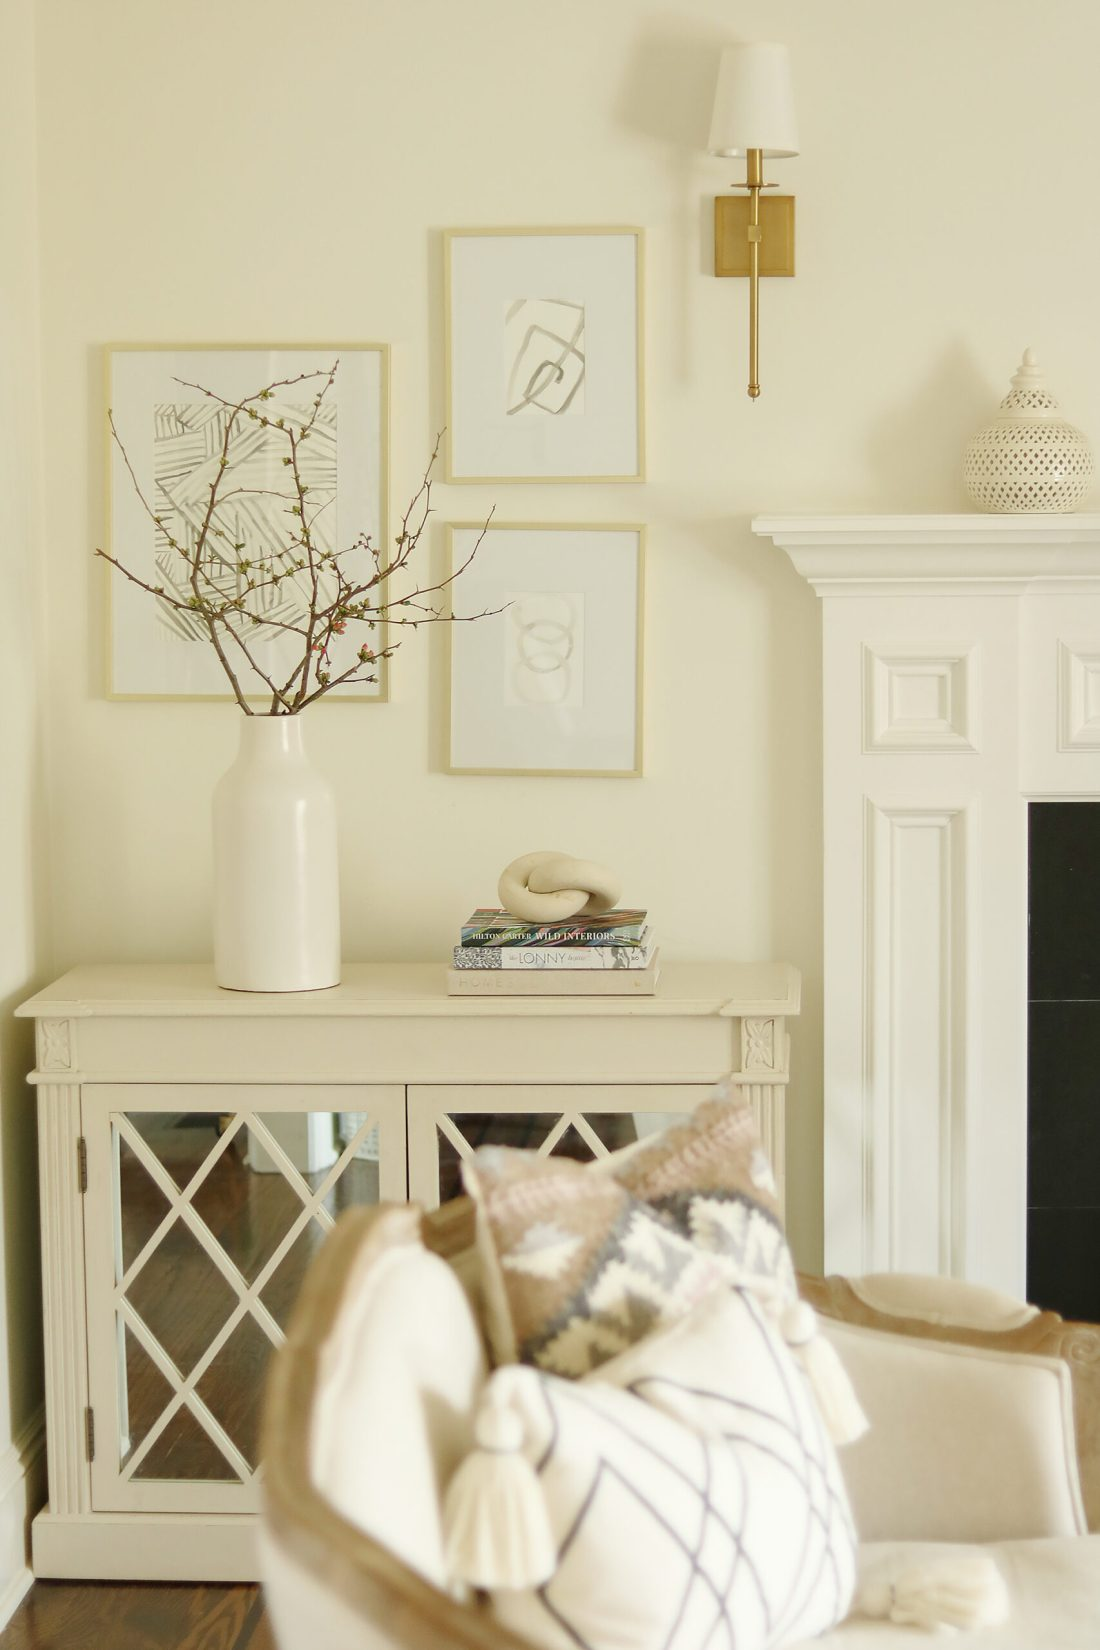 Indoor Styling with Spring Flowers with indoor pots the spring flowers, potted tulips, bring spring flowers indoors, flowering branches in vases || Darling Darleen Top Lifestyle CT Bloggers #springflowers #pottedflowers